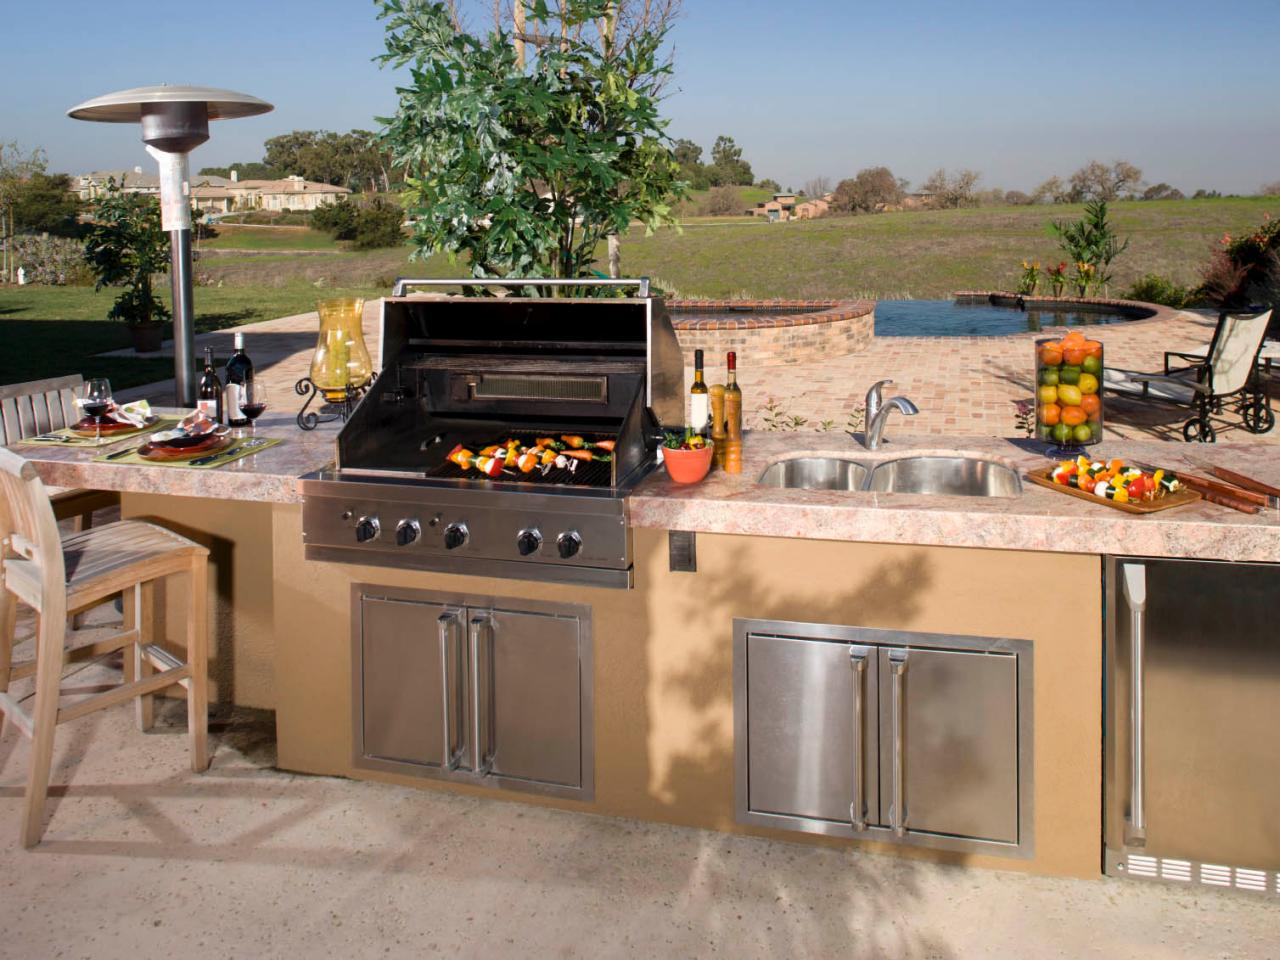 Outdoor Kitchen Designs Unique Outdoor Kitchen Design Ideas Pictures Tips & Expert Advice  Hgtv Review